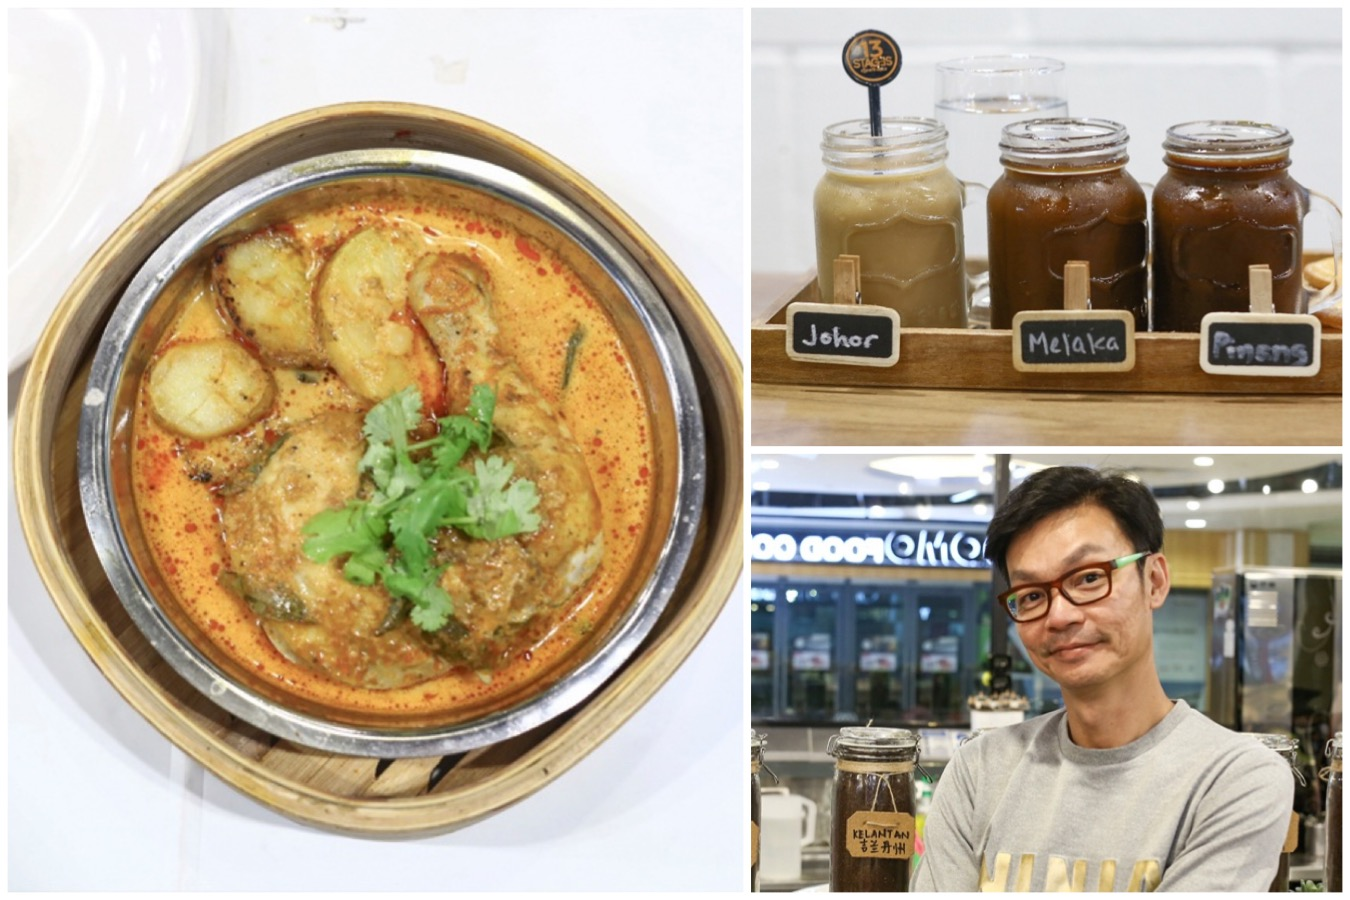 13 Stages - 7 Flavours Of Chicken Rice, 13 Types Of Kopi. Opened By Local Celebrity Mark Lee 李国煌